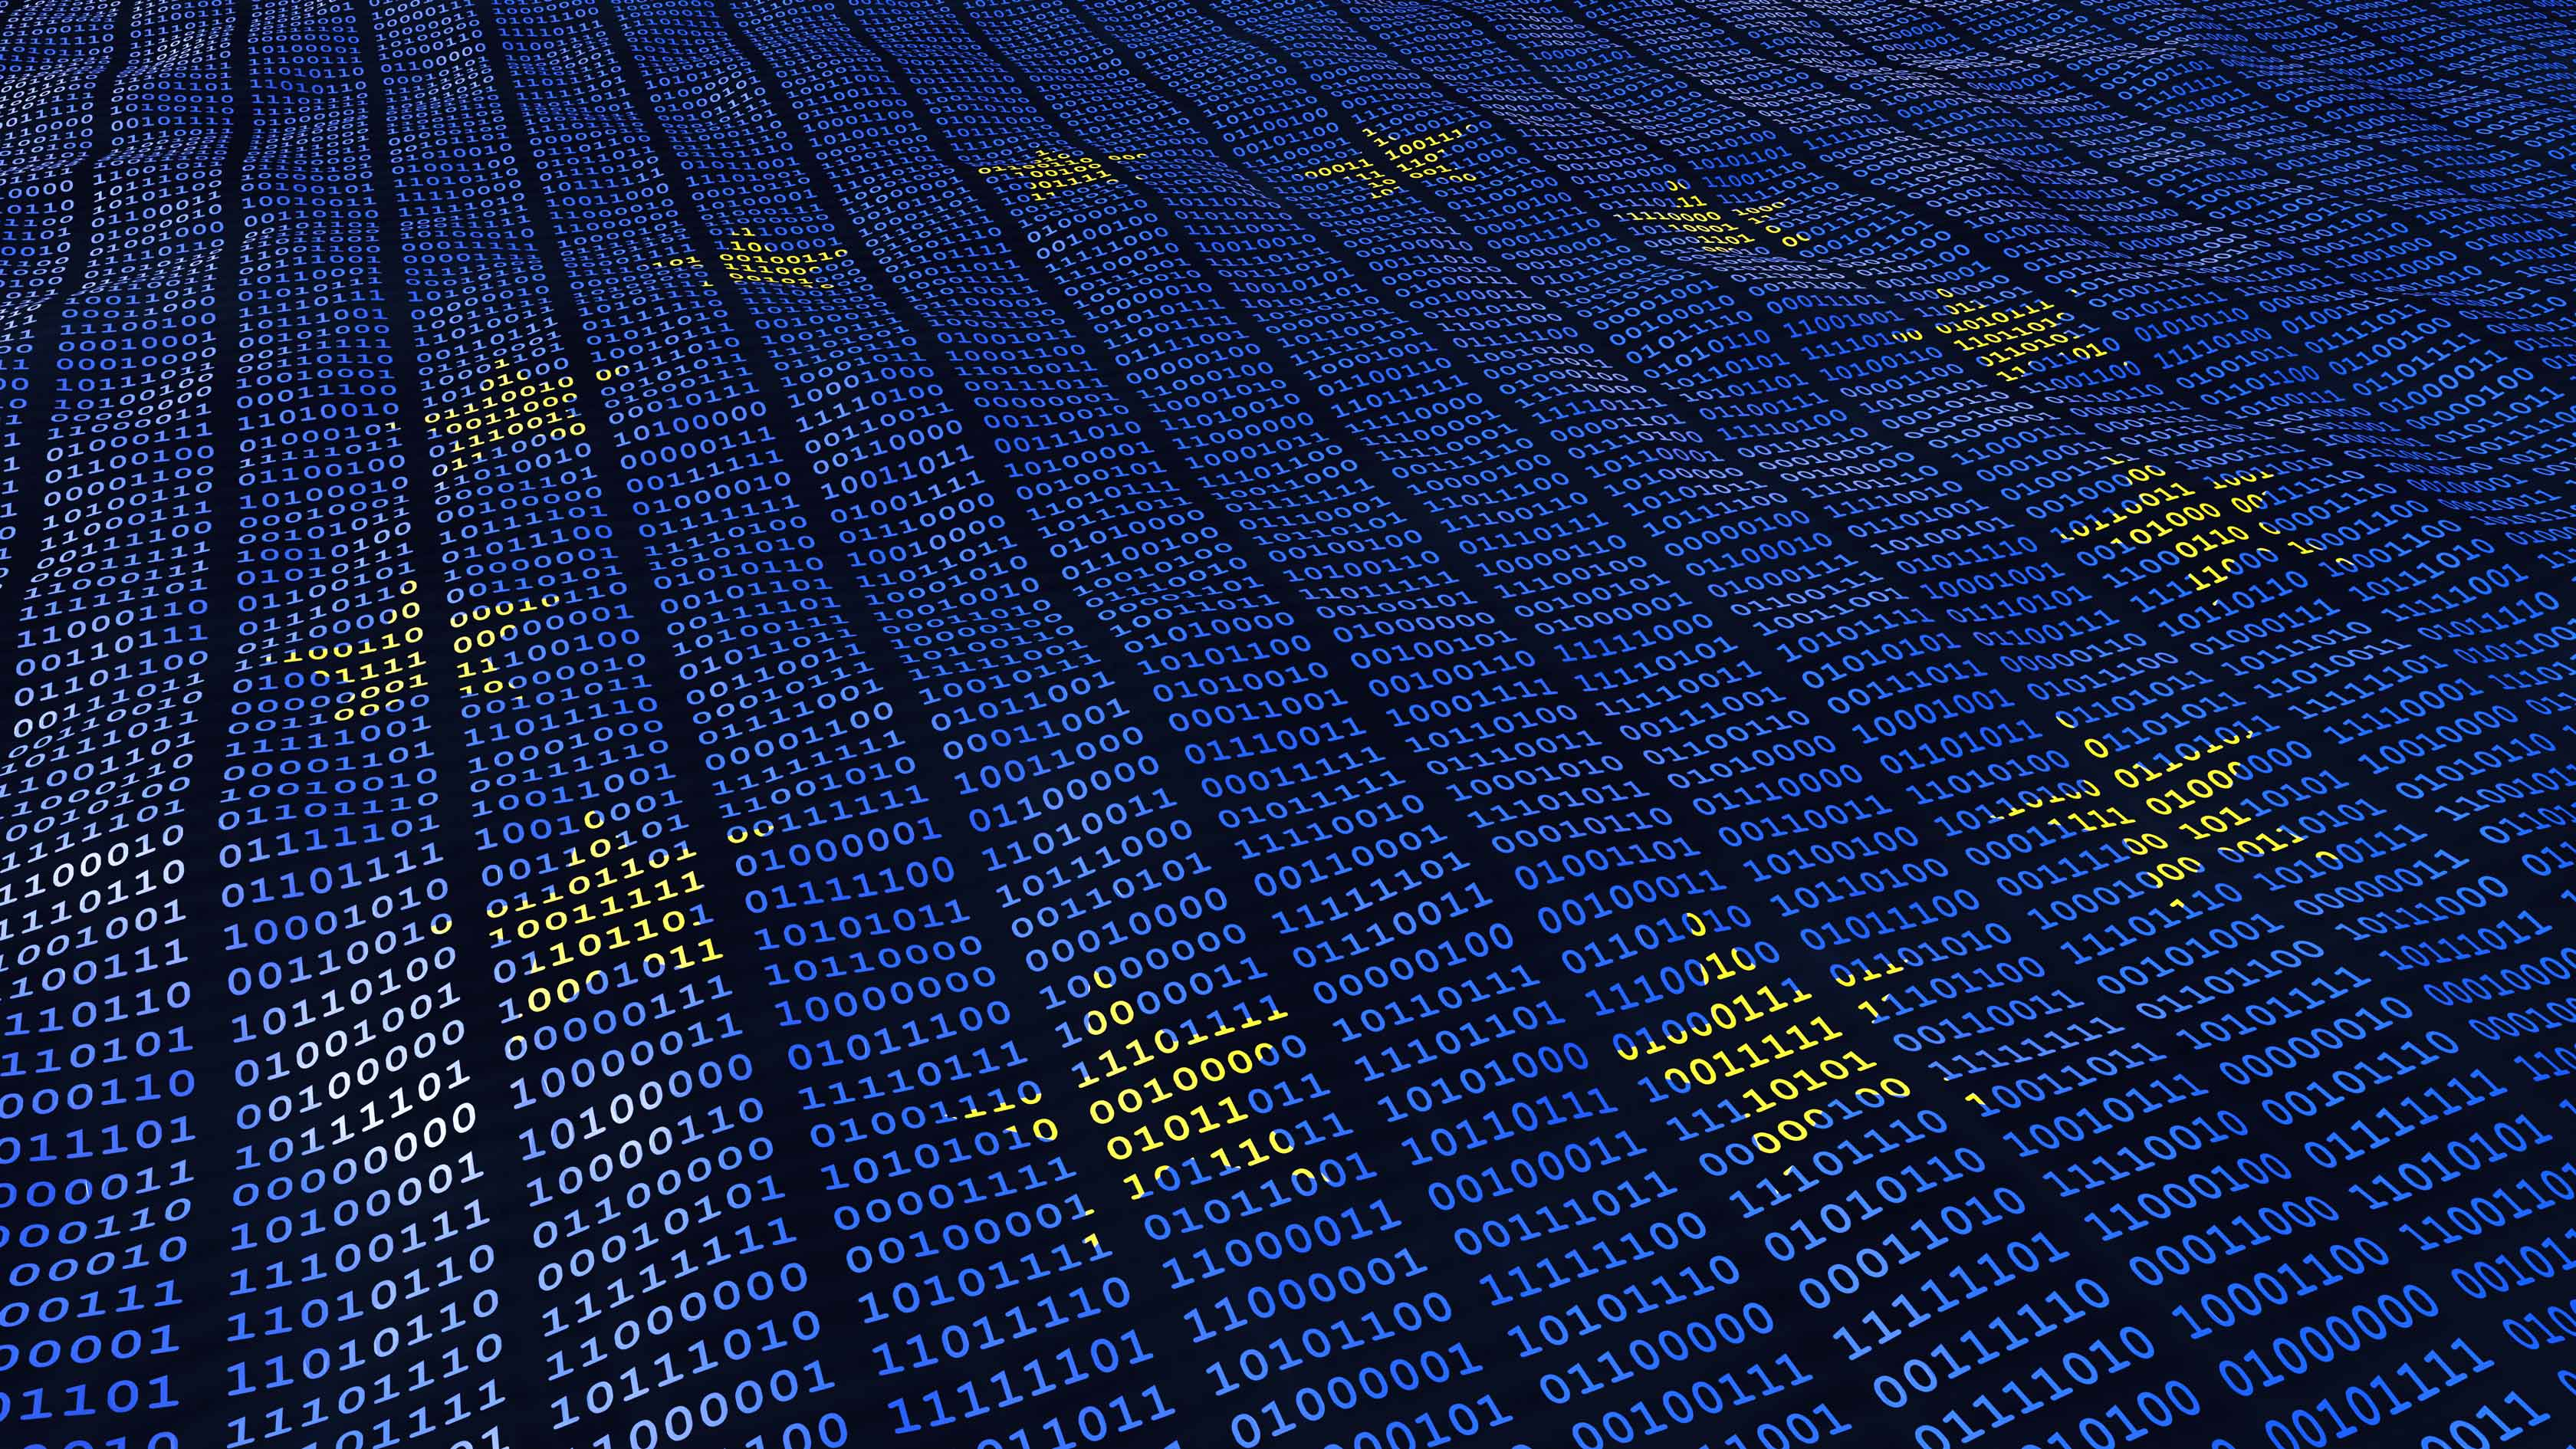 EU flag over binary code for GDPR CRM compliance